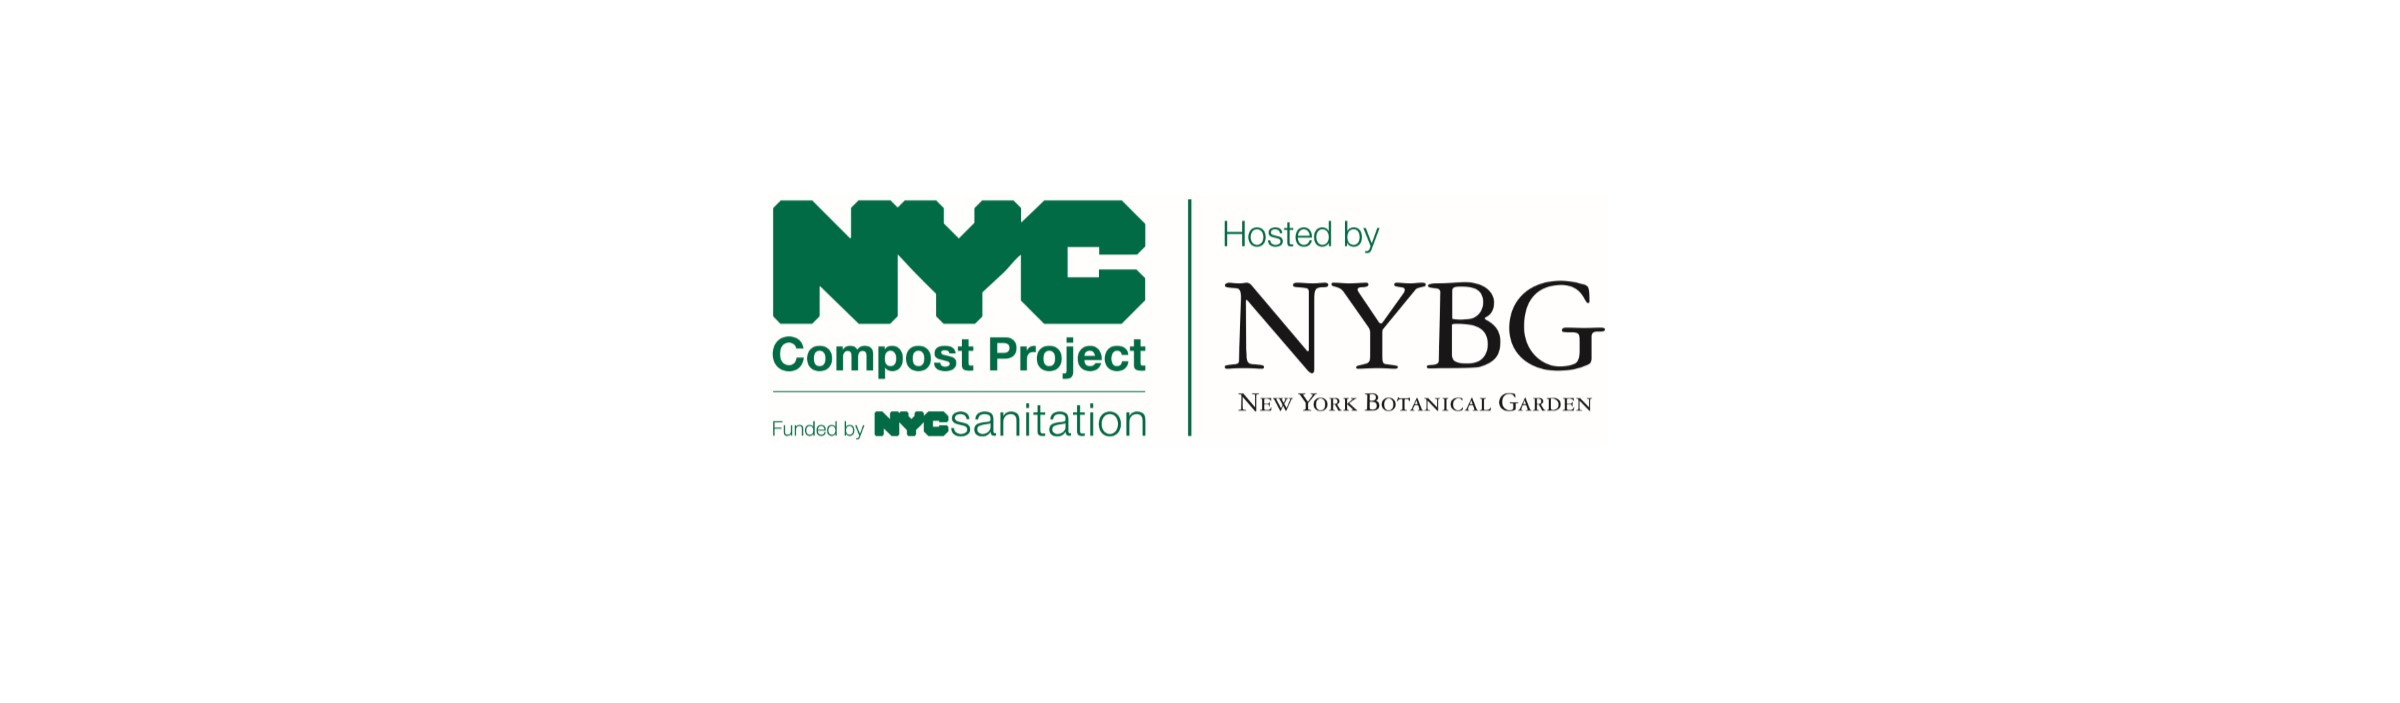 compost project logo